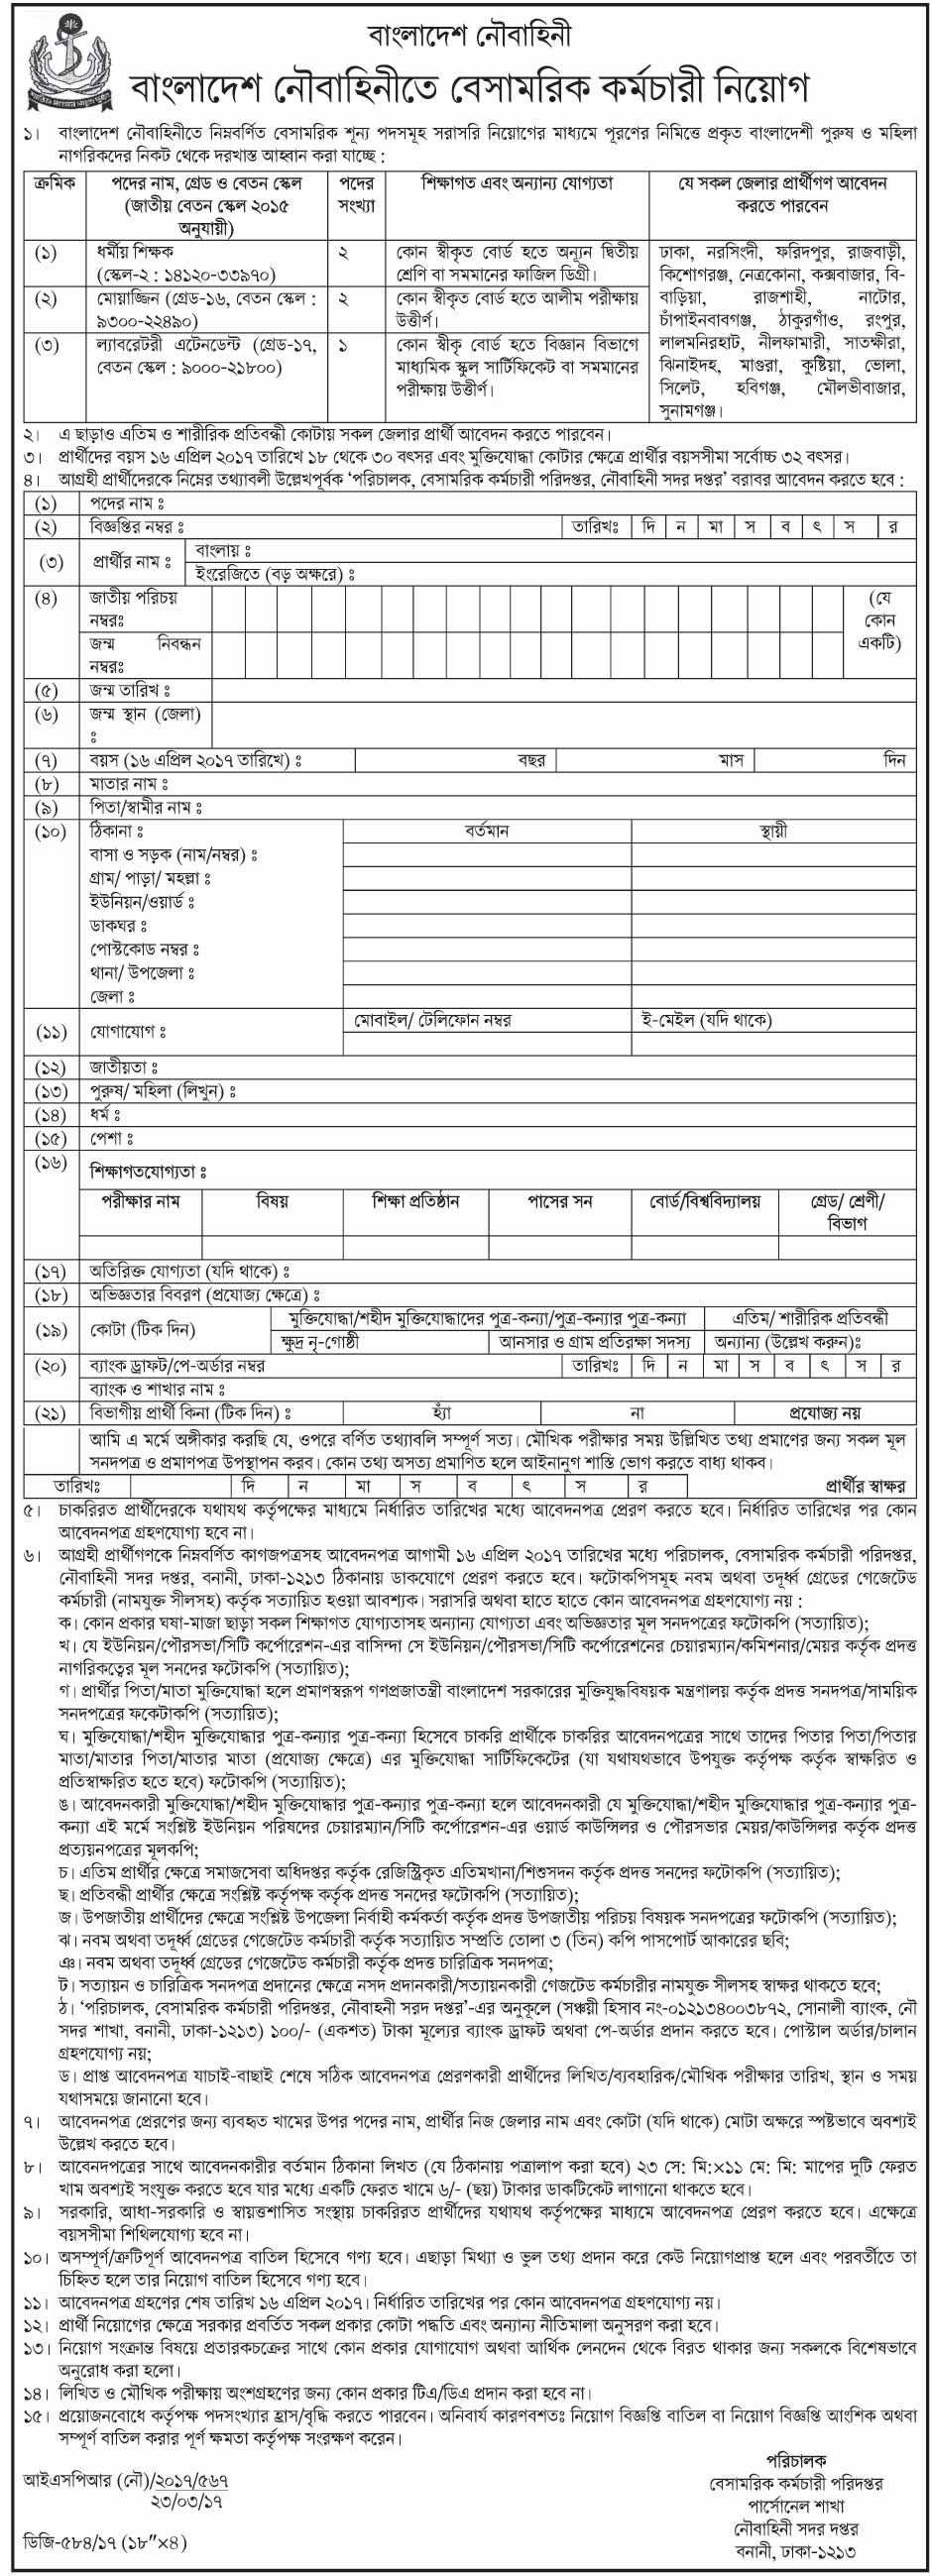 Bangladesh Navy Job Circular April 2017